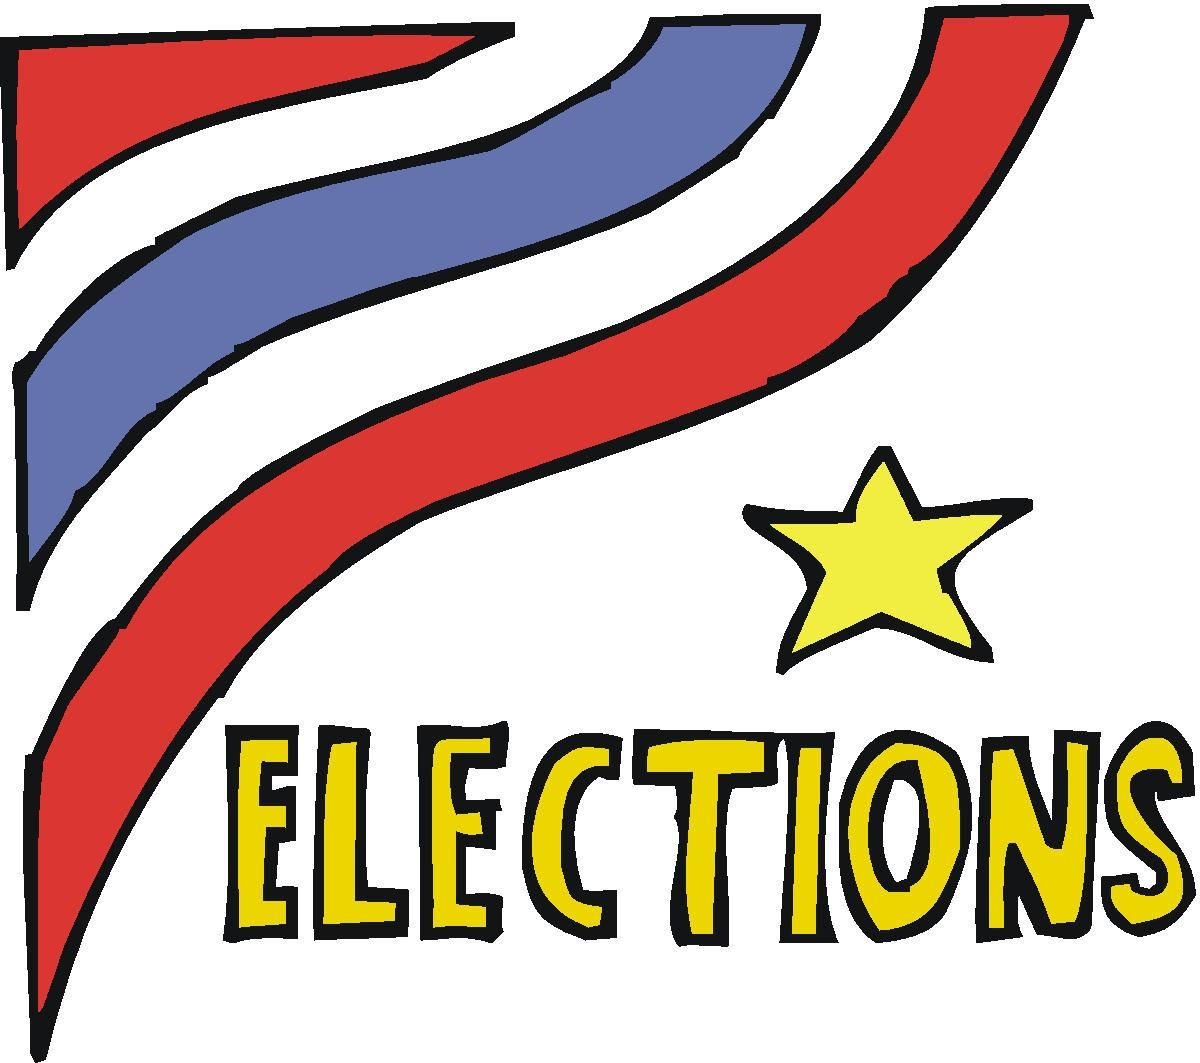 election-clipart-8iG6Ma6jT